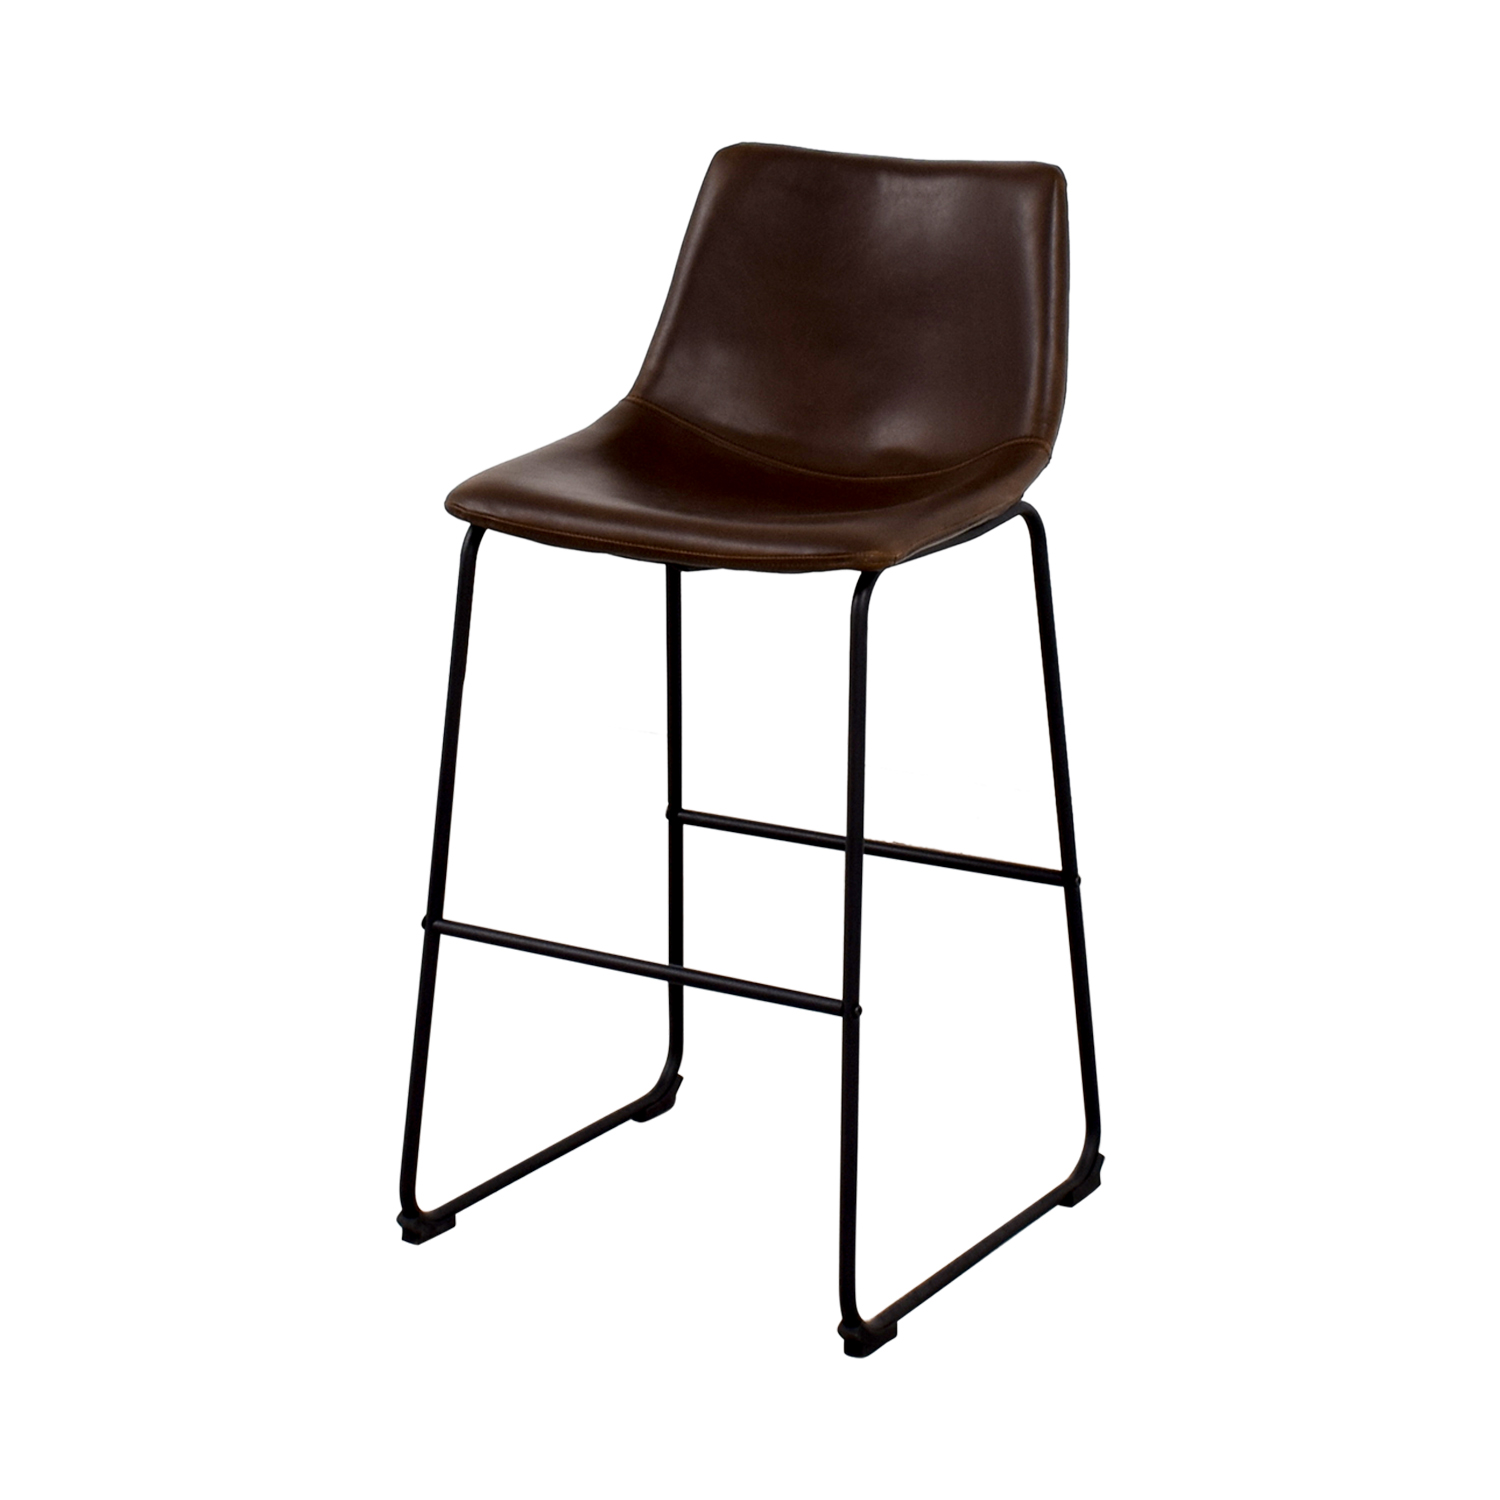 Chair Coasters 90 Off Coaster Coaster Retro Brown Leatherette Counter